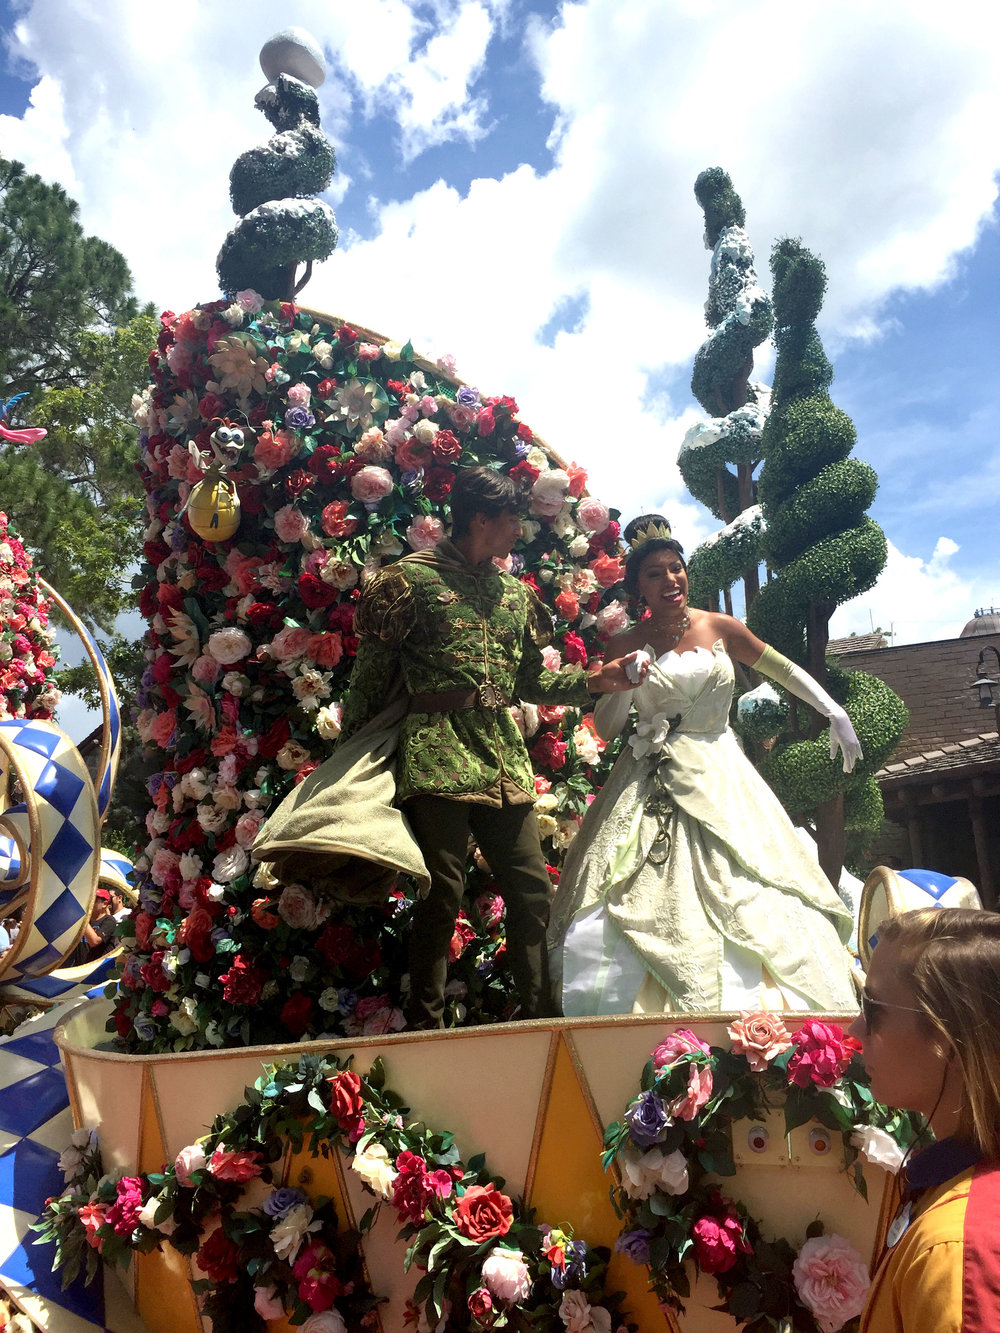 Finally! Tiana AND NAVEEN! Such underappreciated characters that don't get enough representation in the parks! I loved seeing them together in the parade!